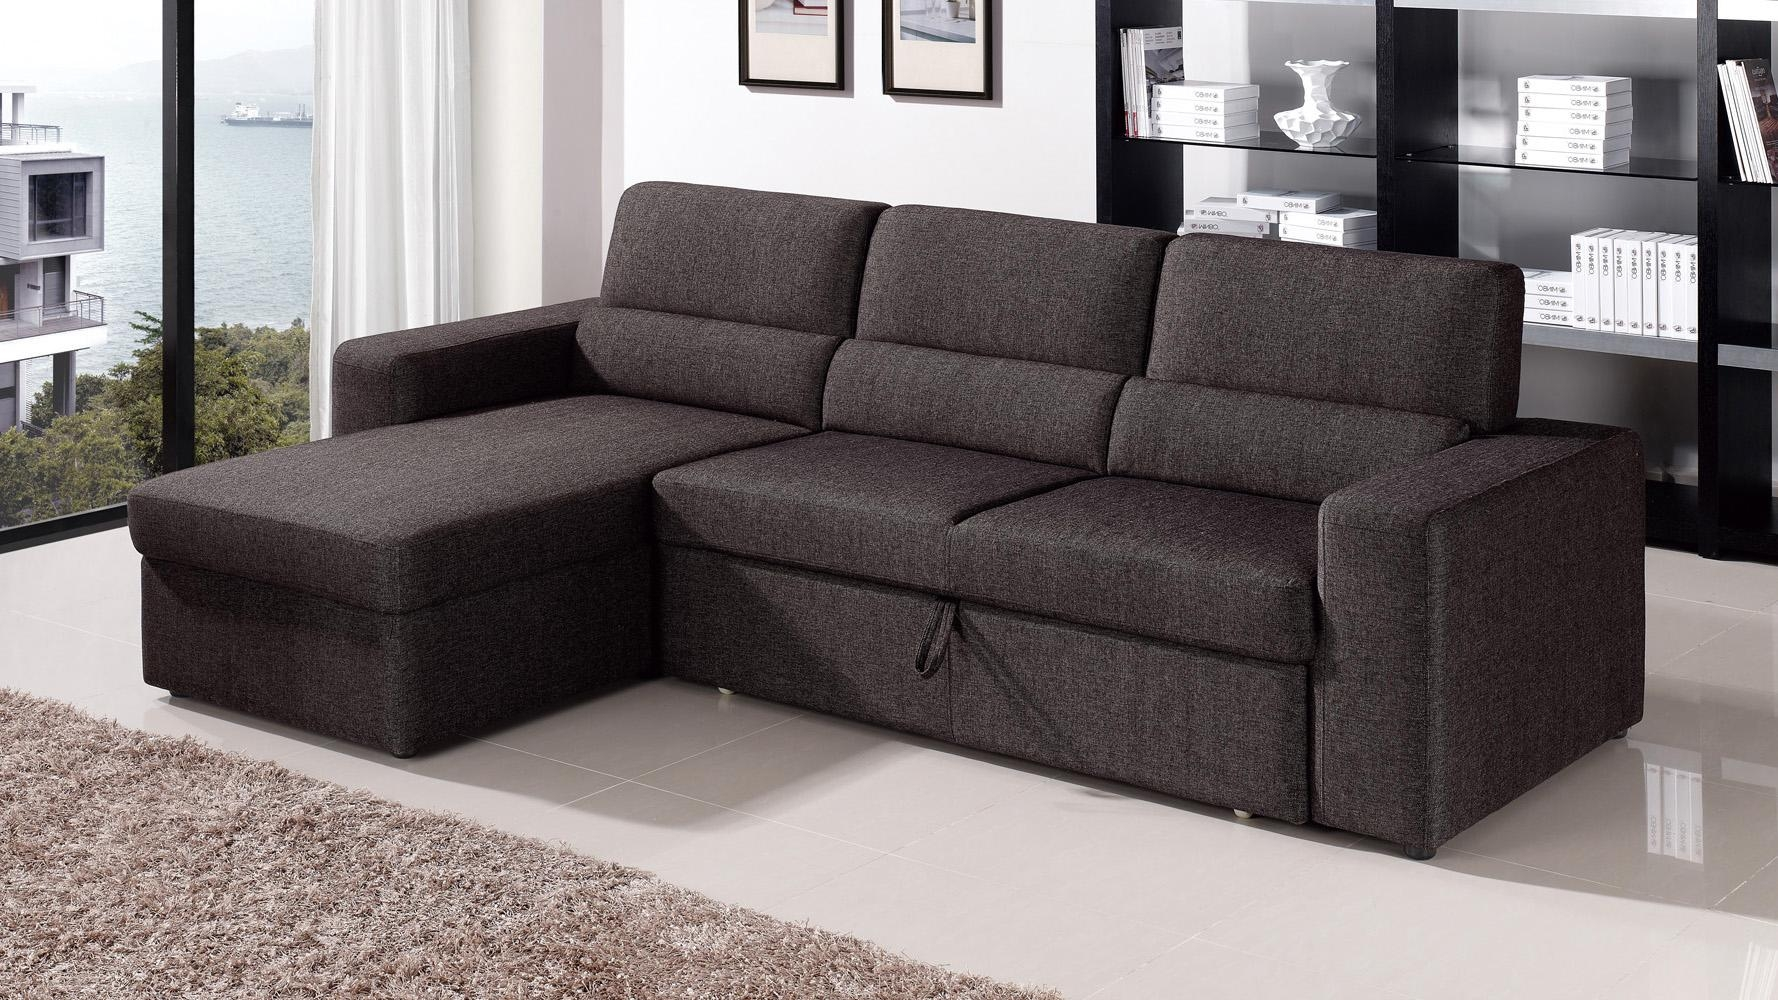 Black/brown Clubber Sleeper Sectional Sofa | Zuri Furniture Regarding Pull Out Sofa Chairs (Image 1 of 20)